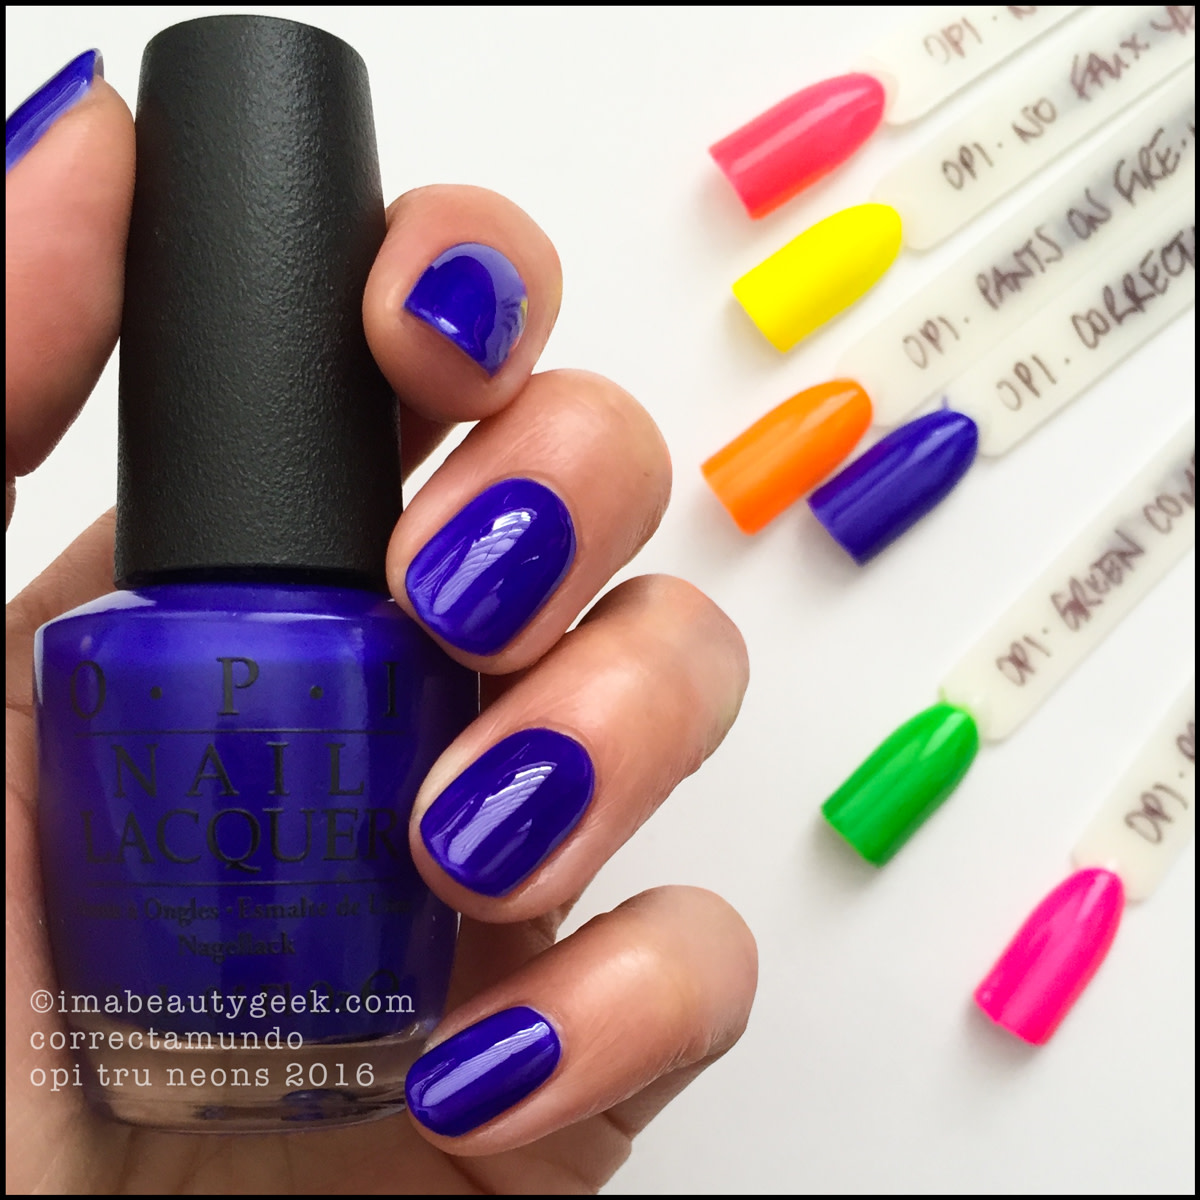 OPI Correctamundo_OPI Tru Neons 2016 Collection Swatches Review